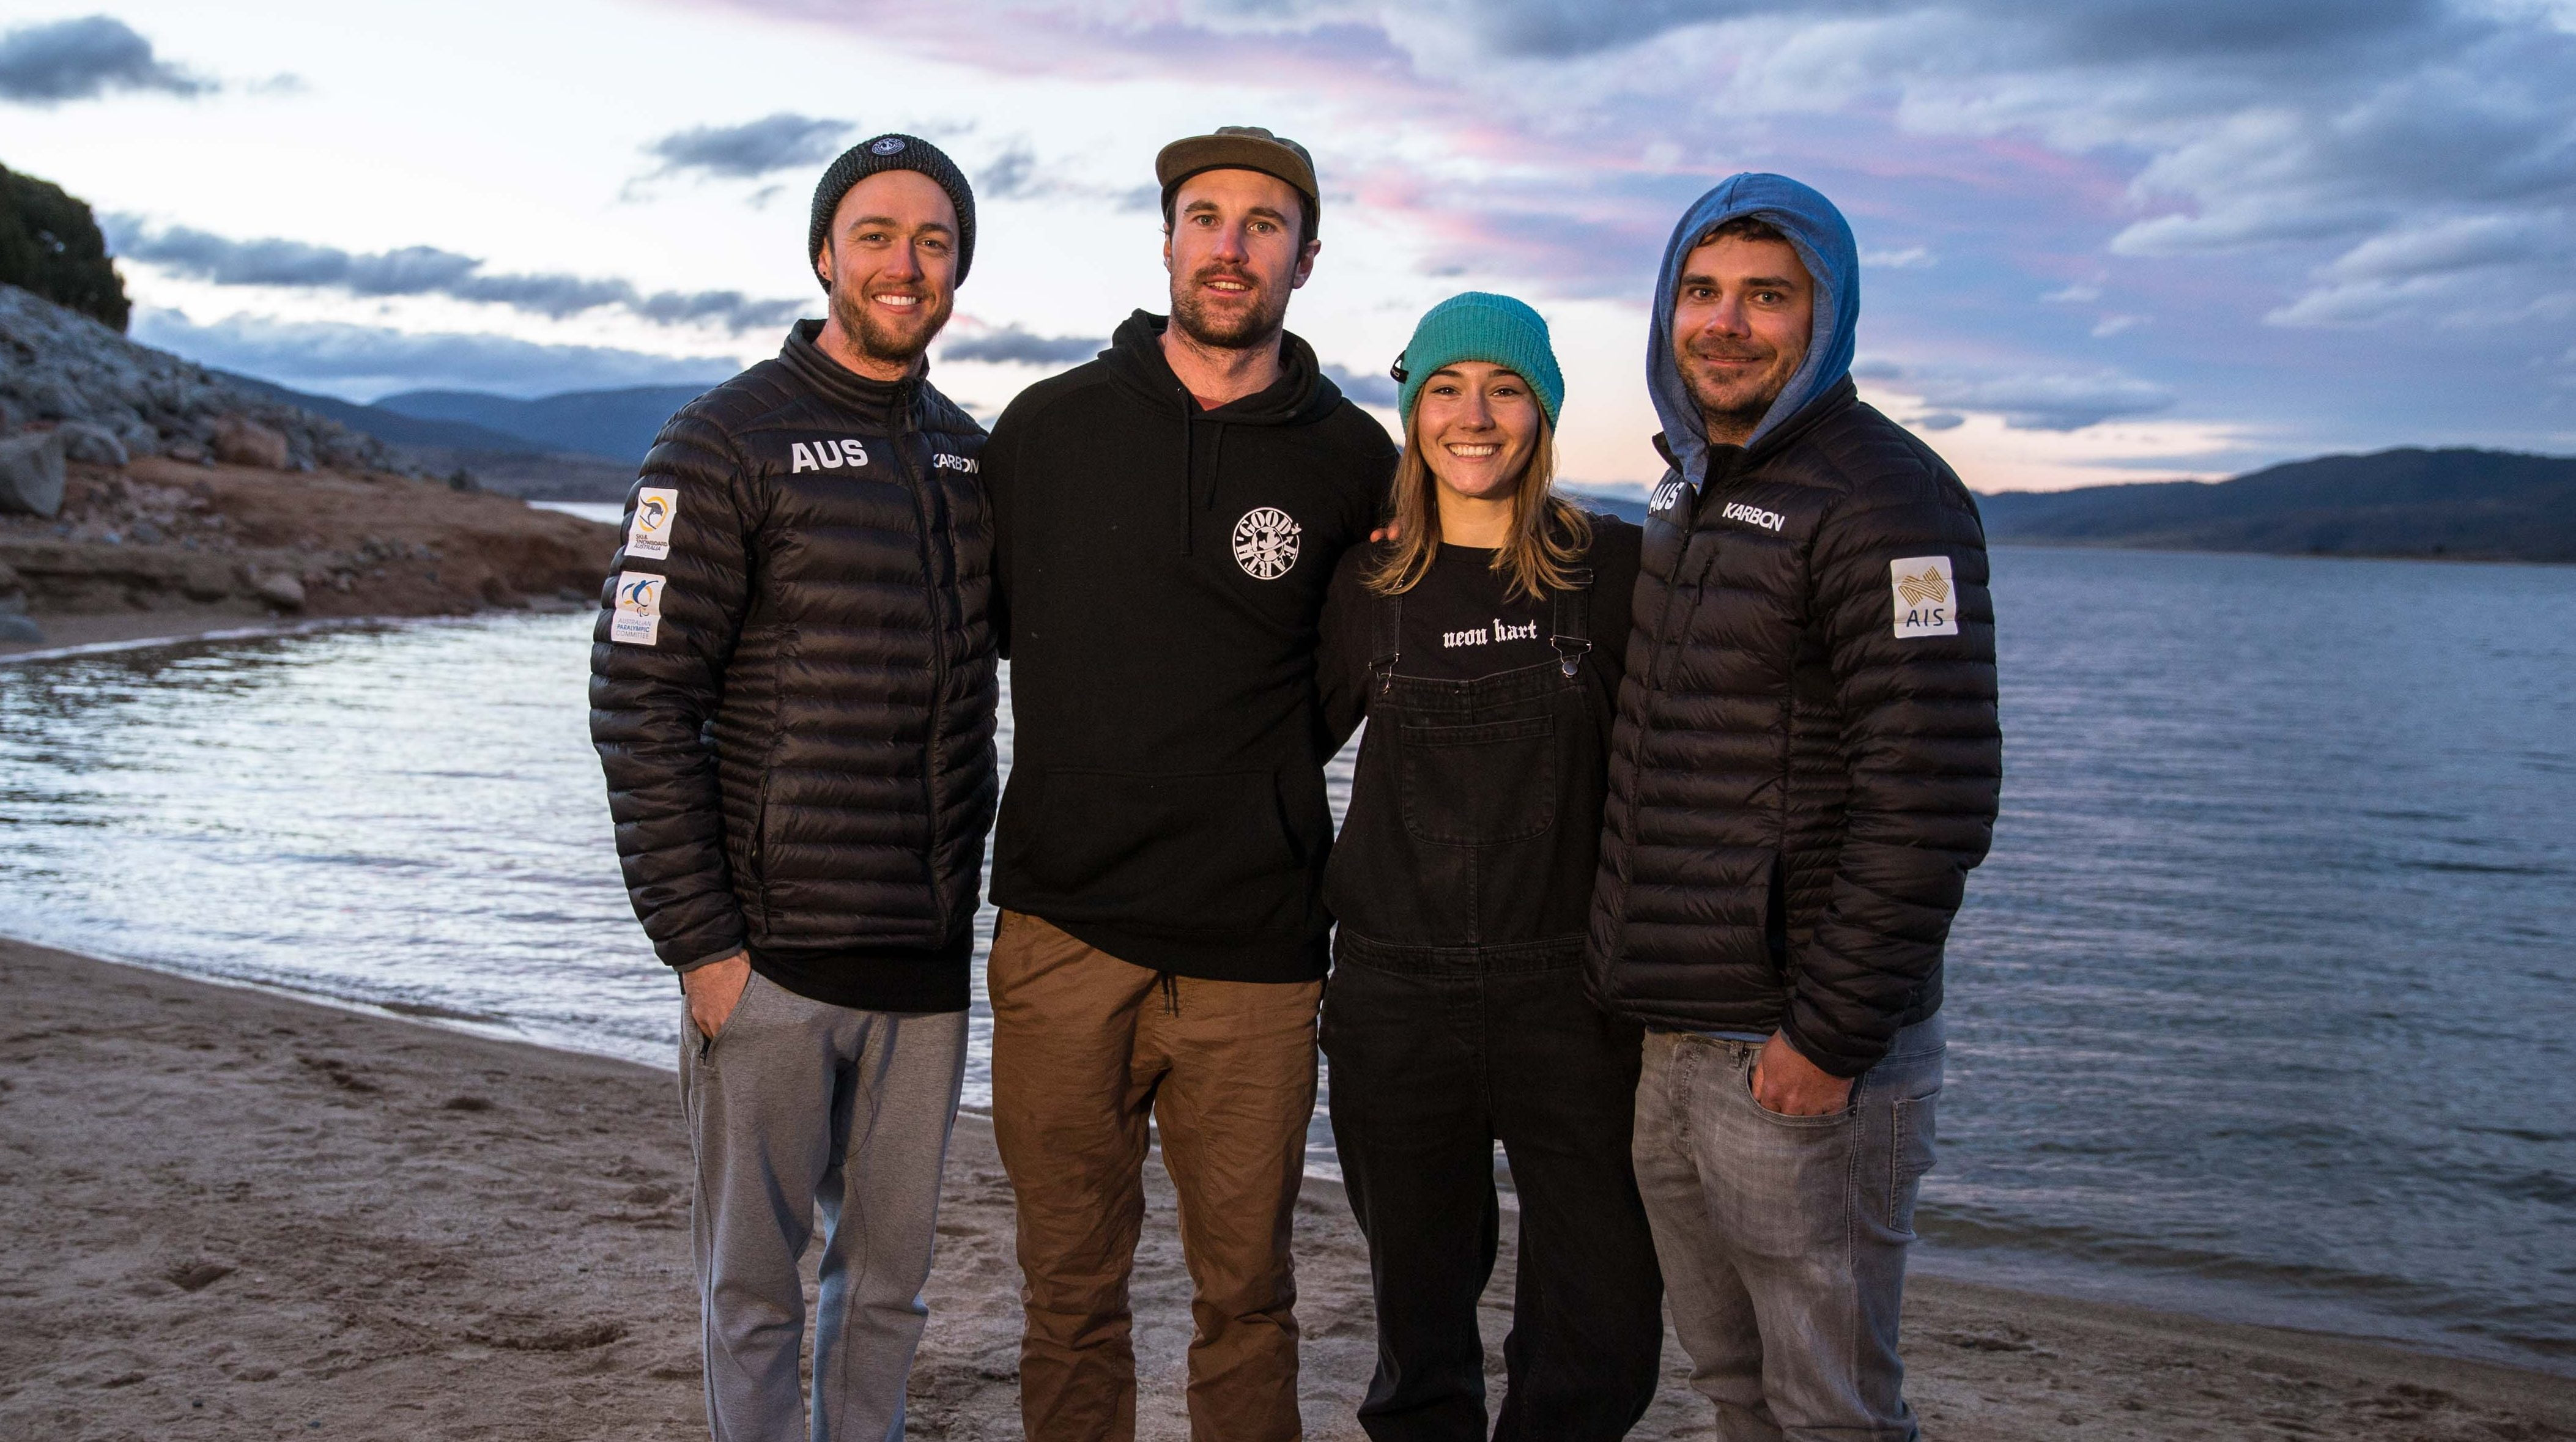 Para-snowboarders ready for Banked Slalom World Cup in NZ